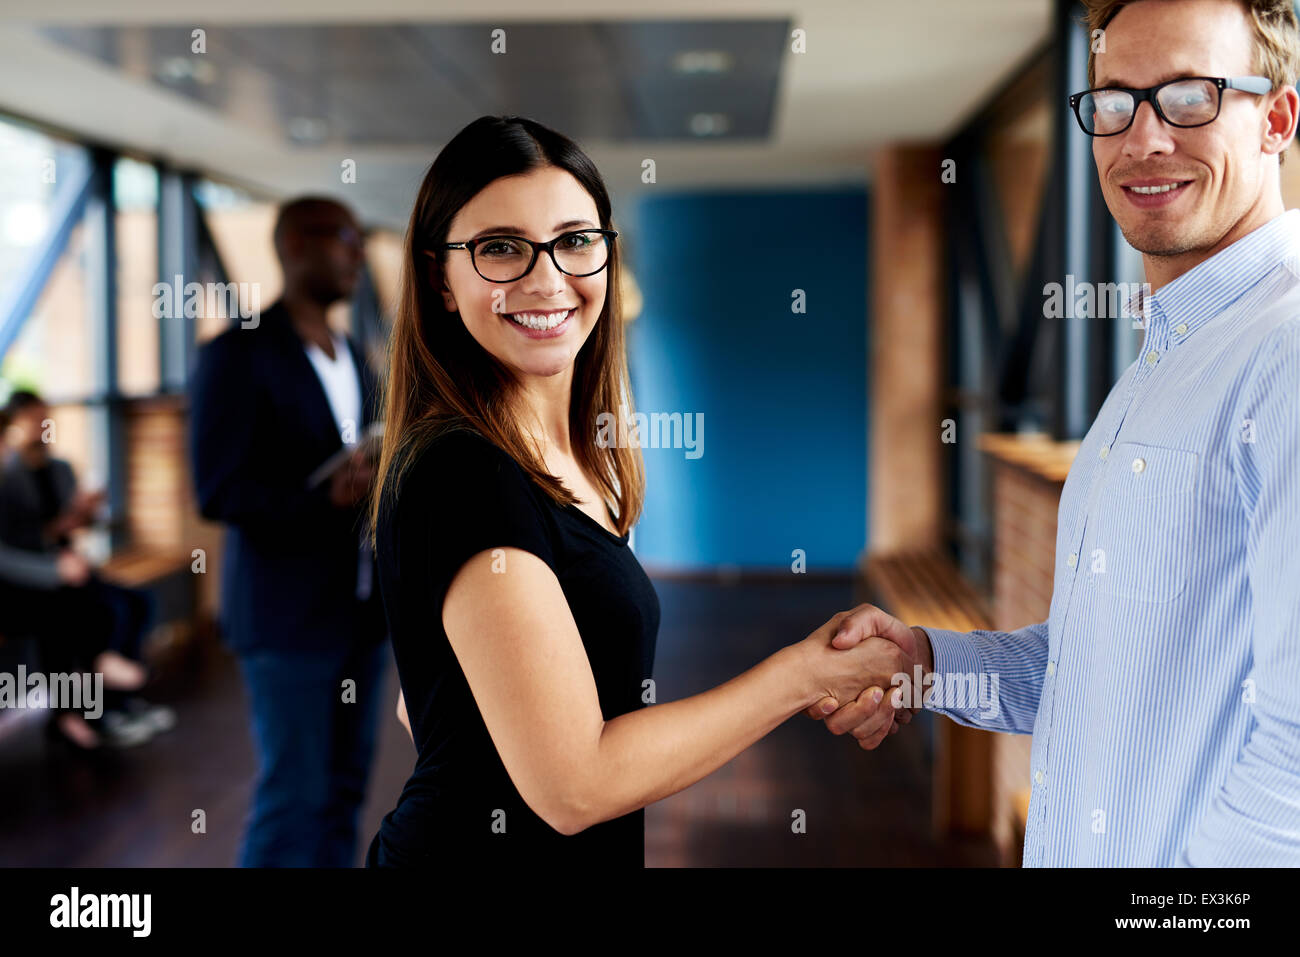 White female and white male executives shaking hands and smiling at camera - Stock Image